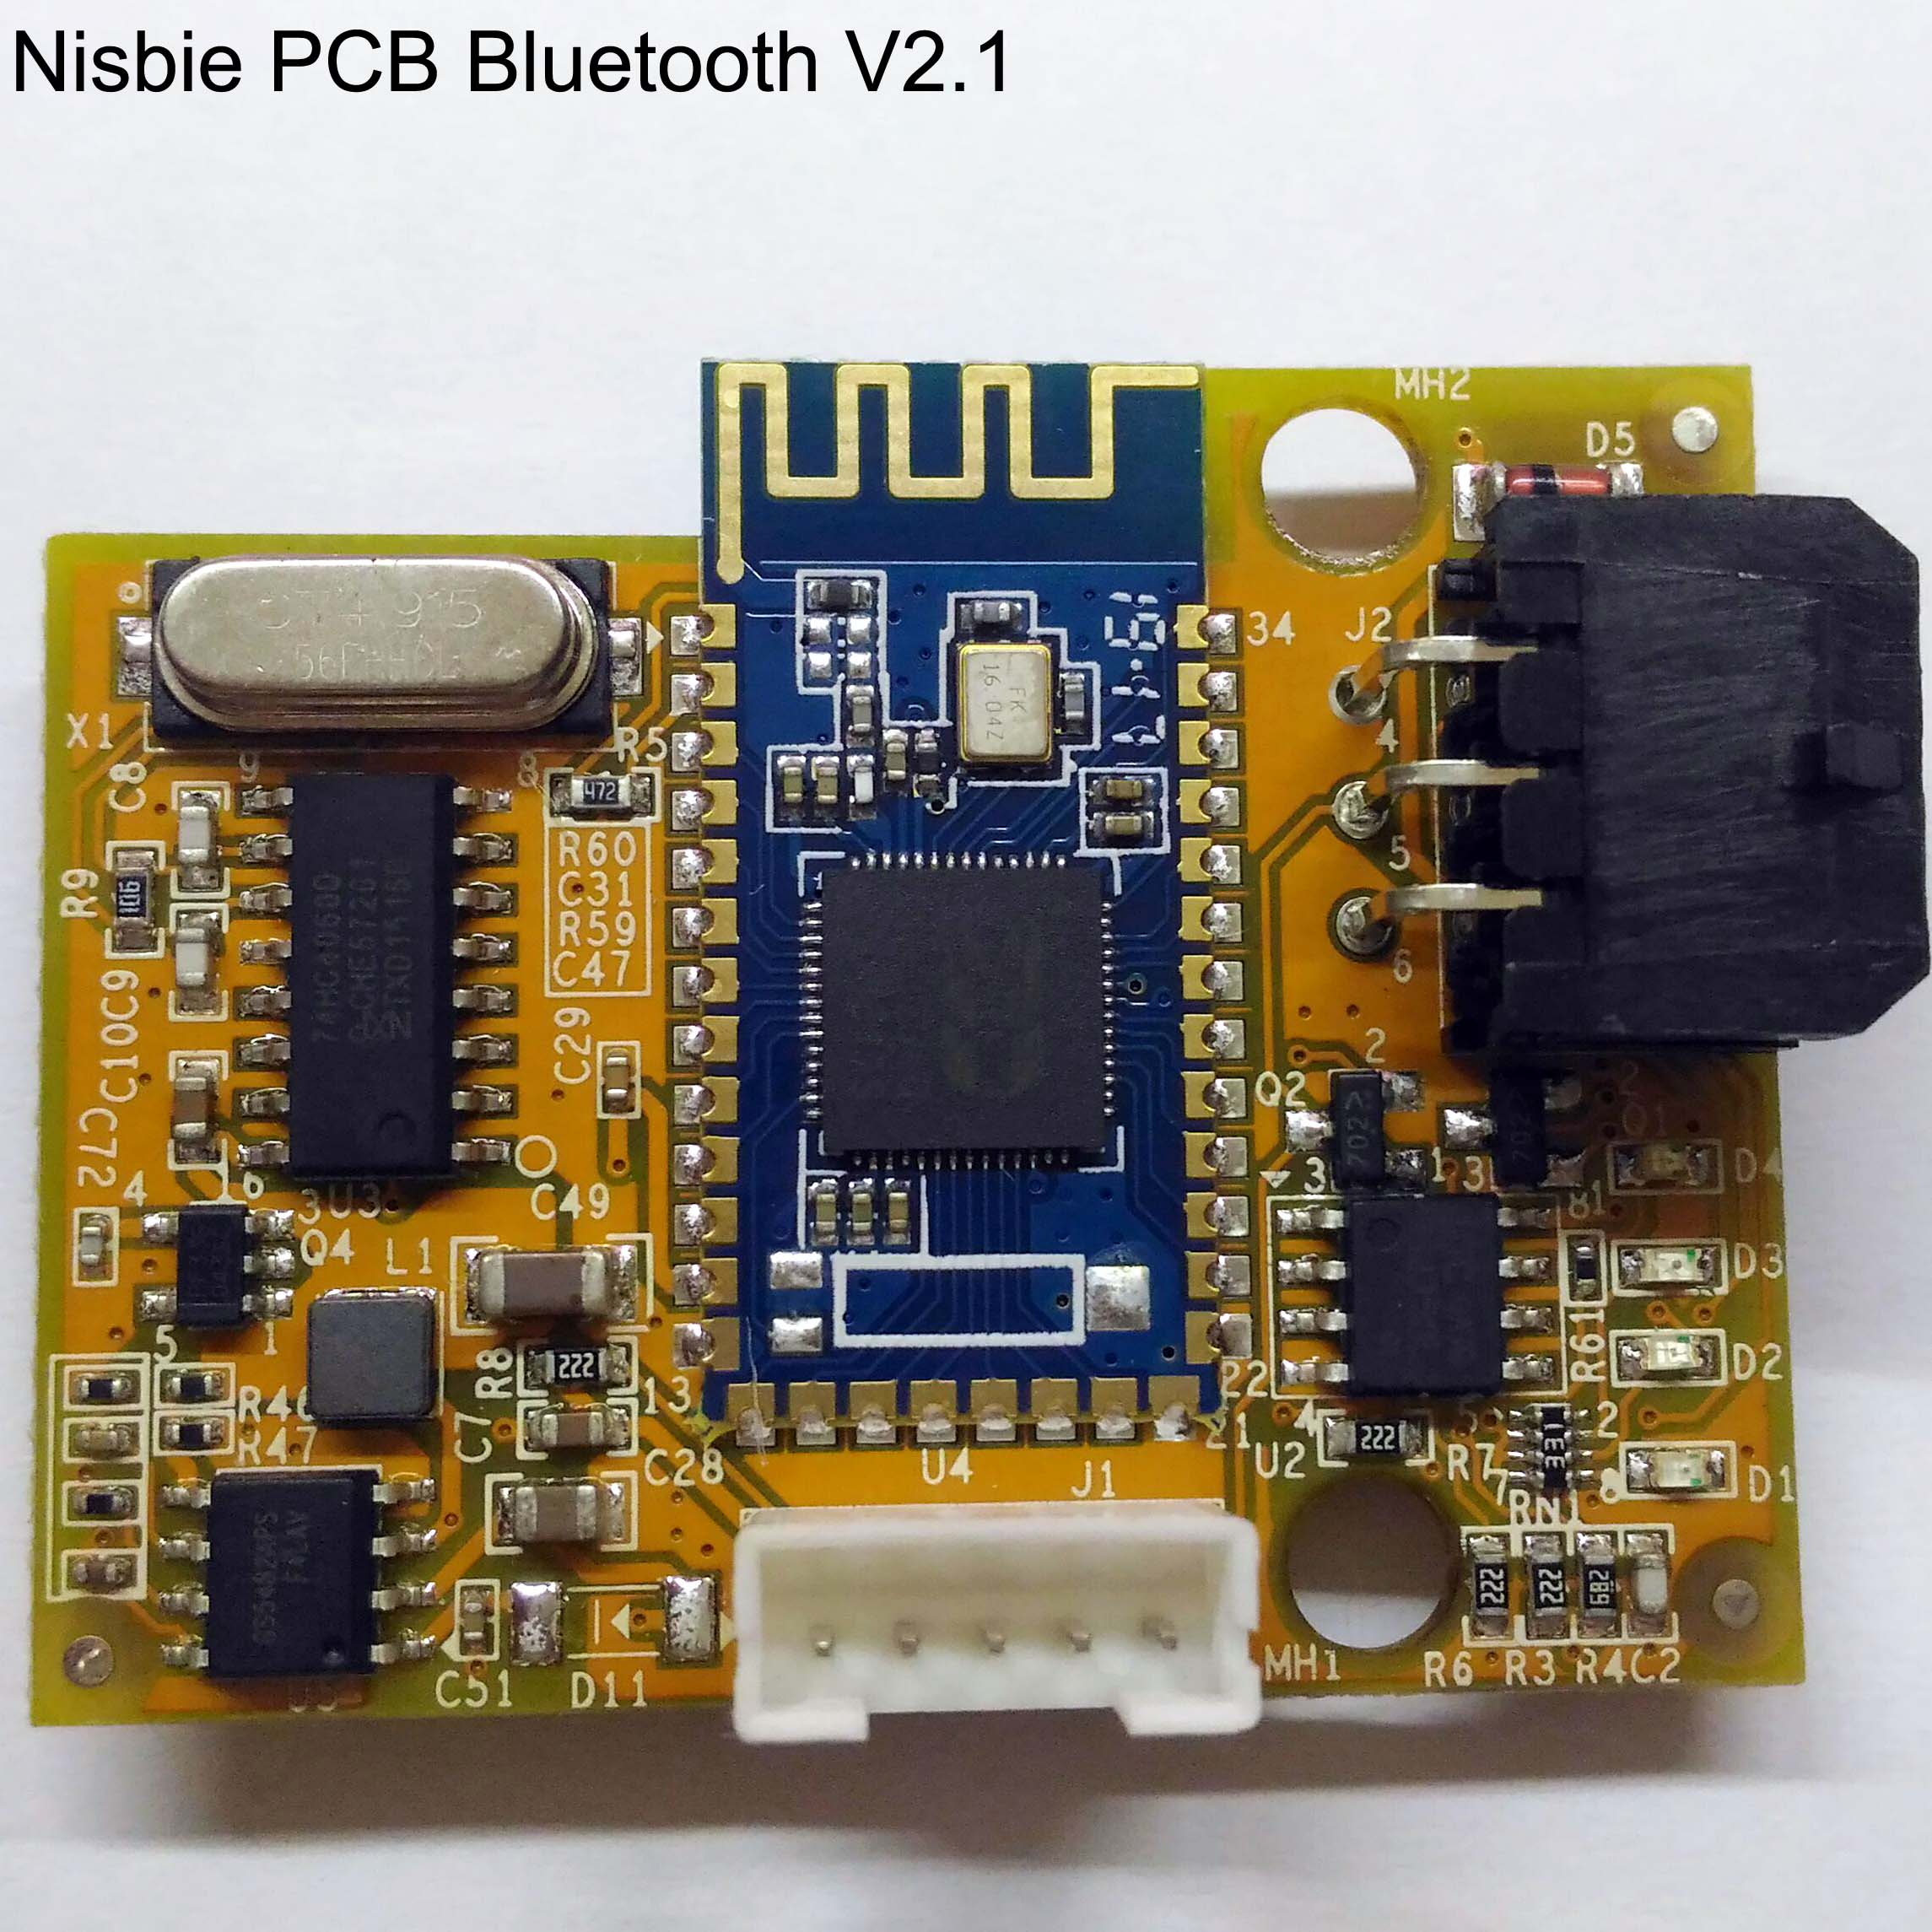 Nisbie Bluetooth V22 PCB